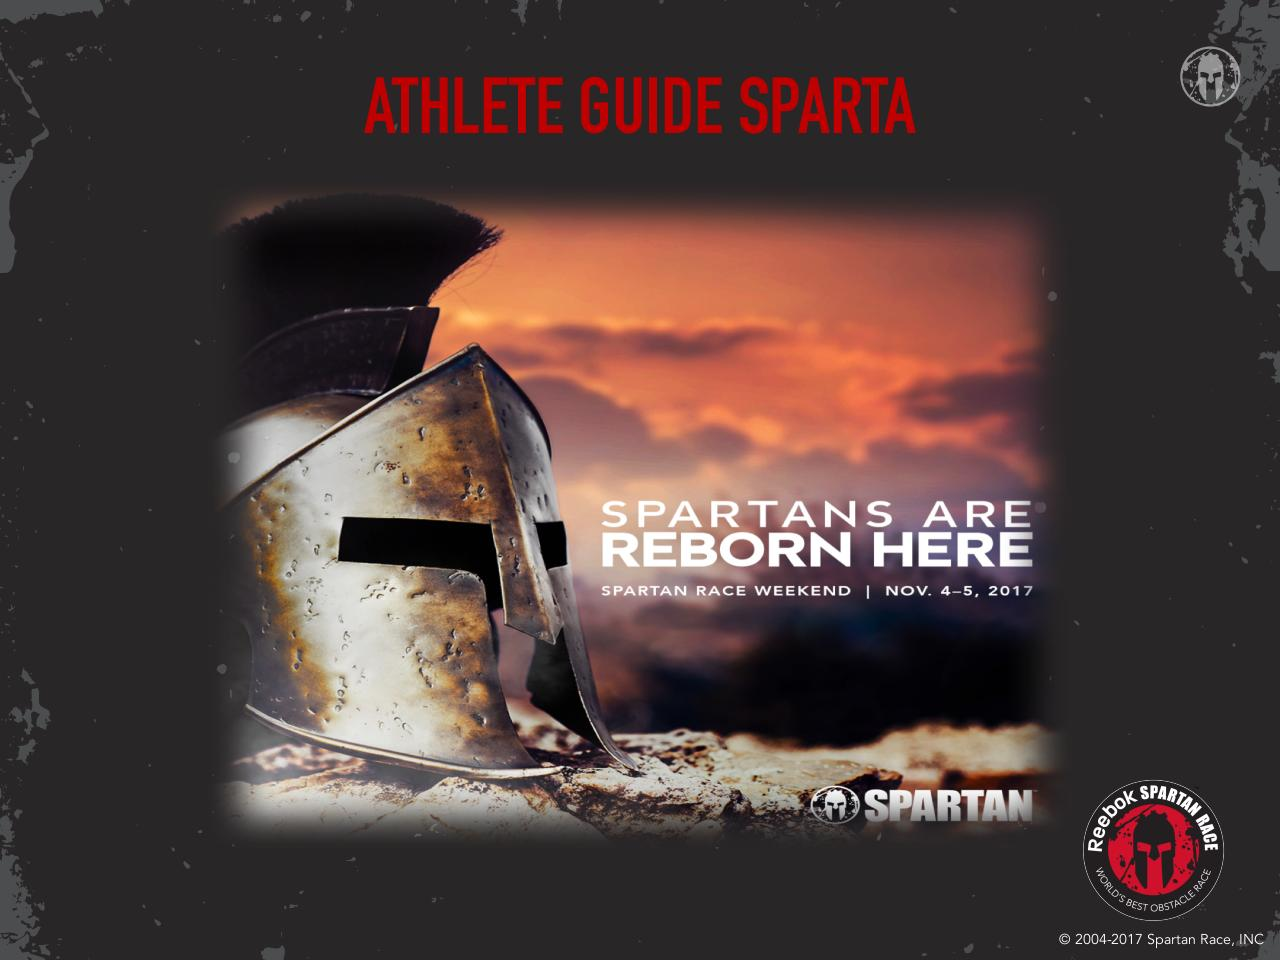 ATHLETES GUIDE SPARTA GR final.pdf - page 1/12